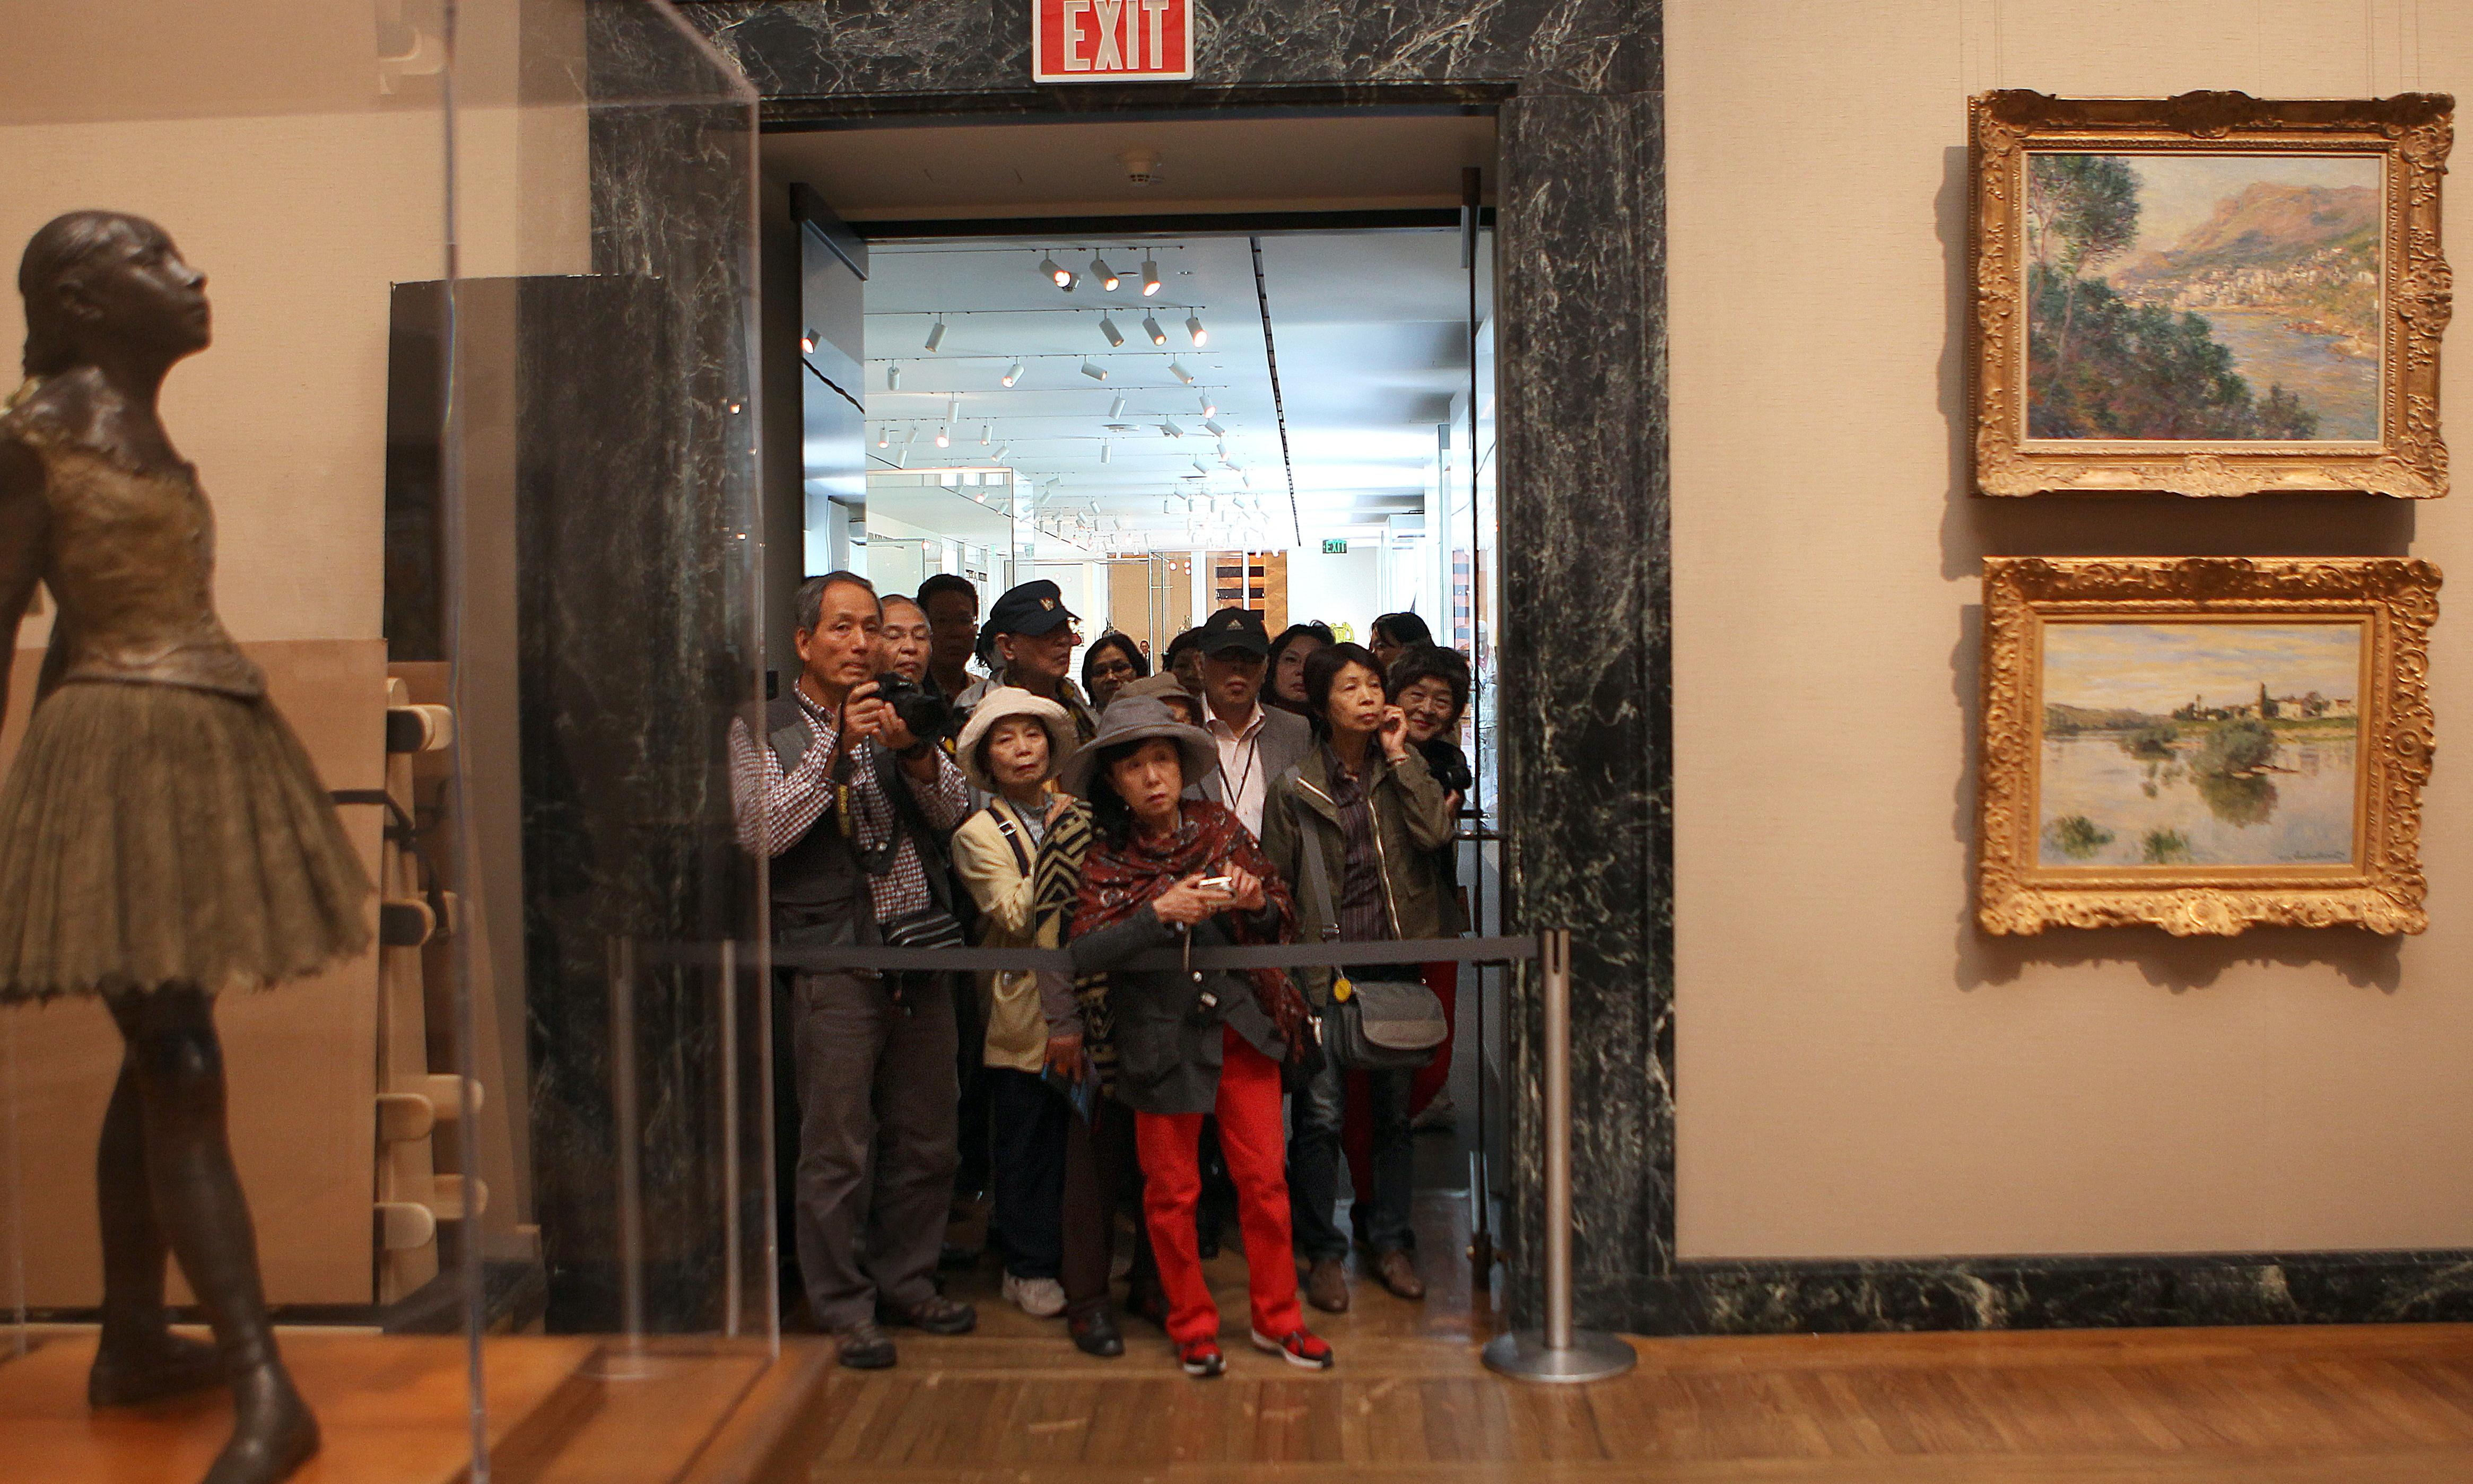 Boston Museum of Fine Arts acts over middle schoolers' racism claim